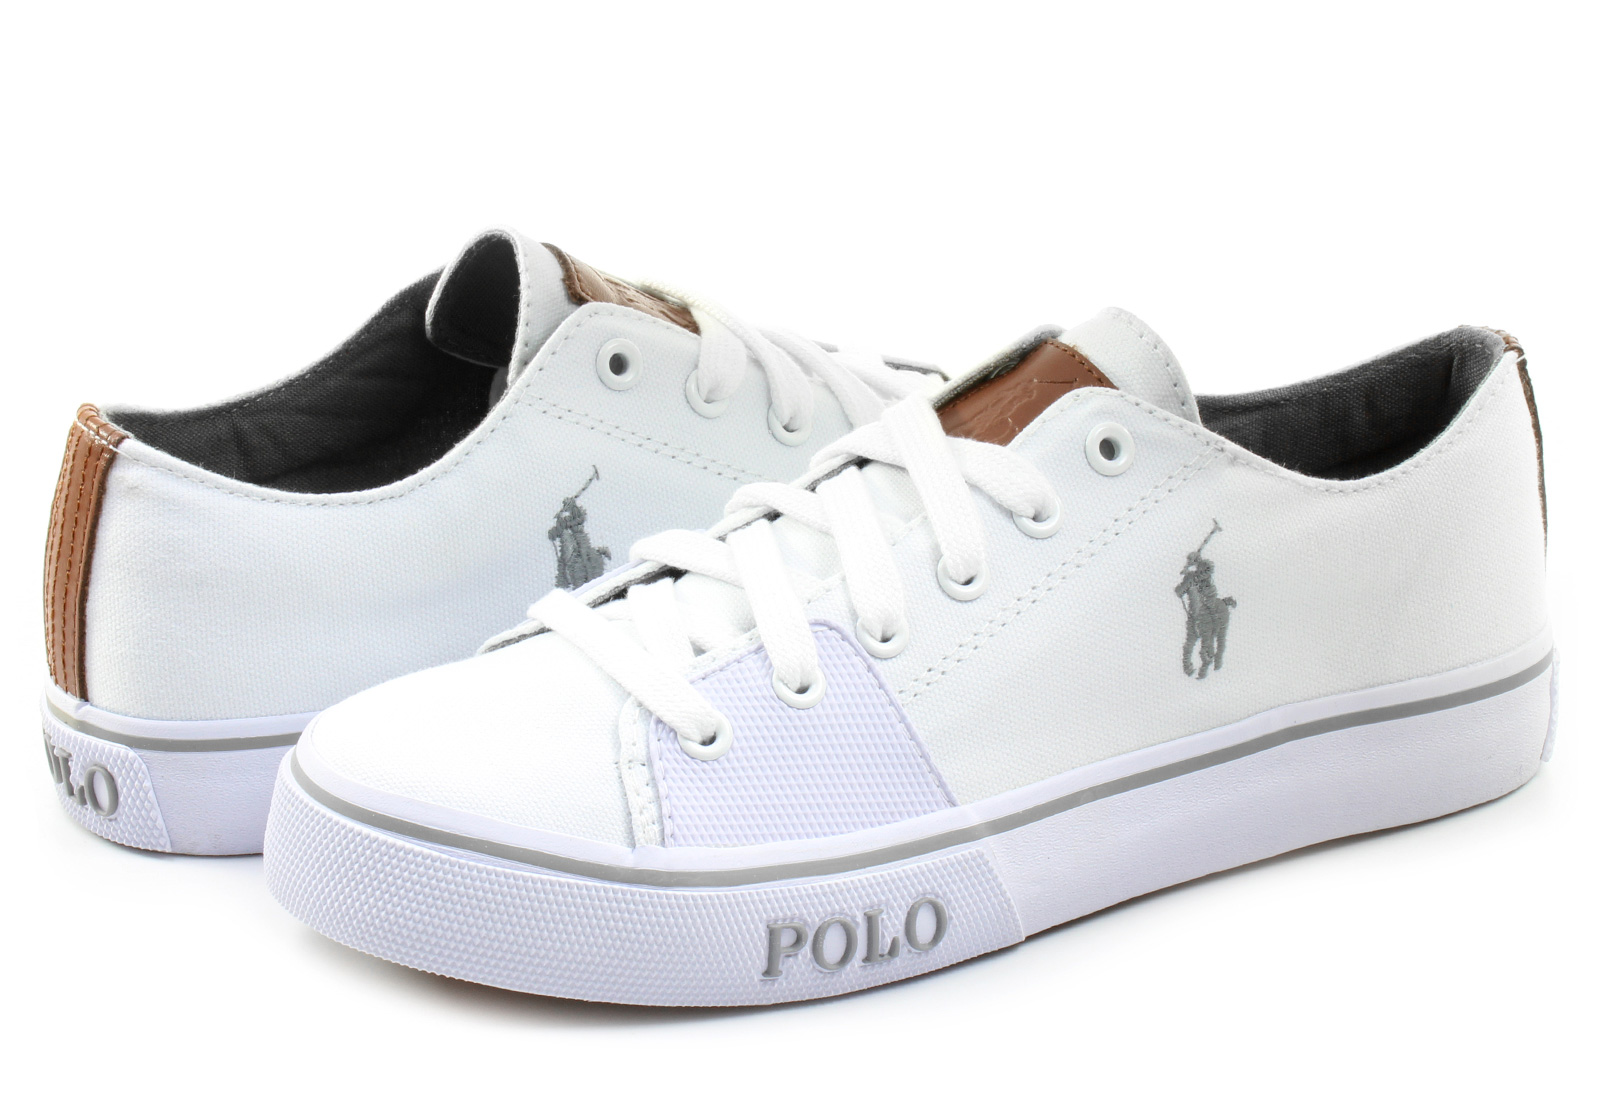 polo ralph lauren shoes cantor low ne 2003 c a1557 online shop. Black Bedroom Furniture Sets. Home Design Ideas